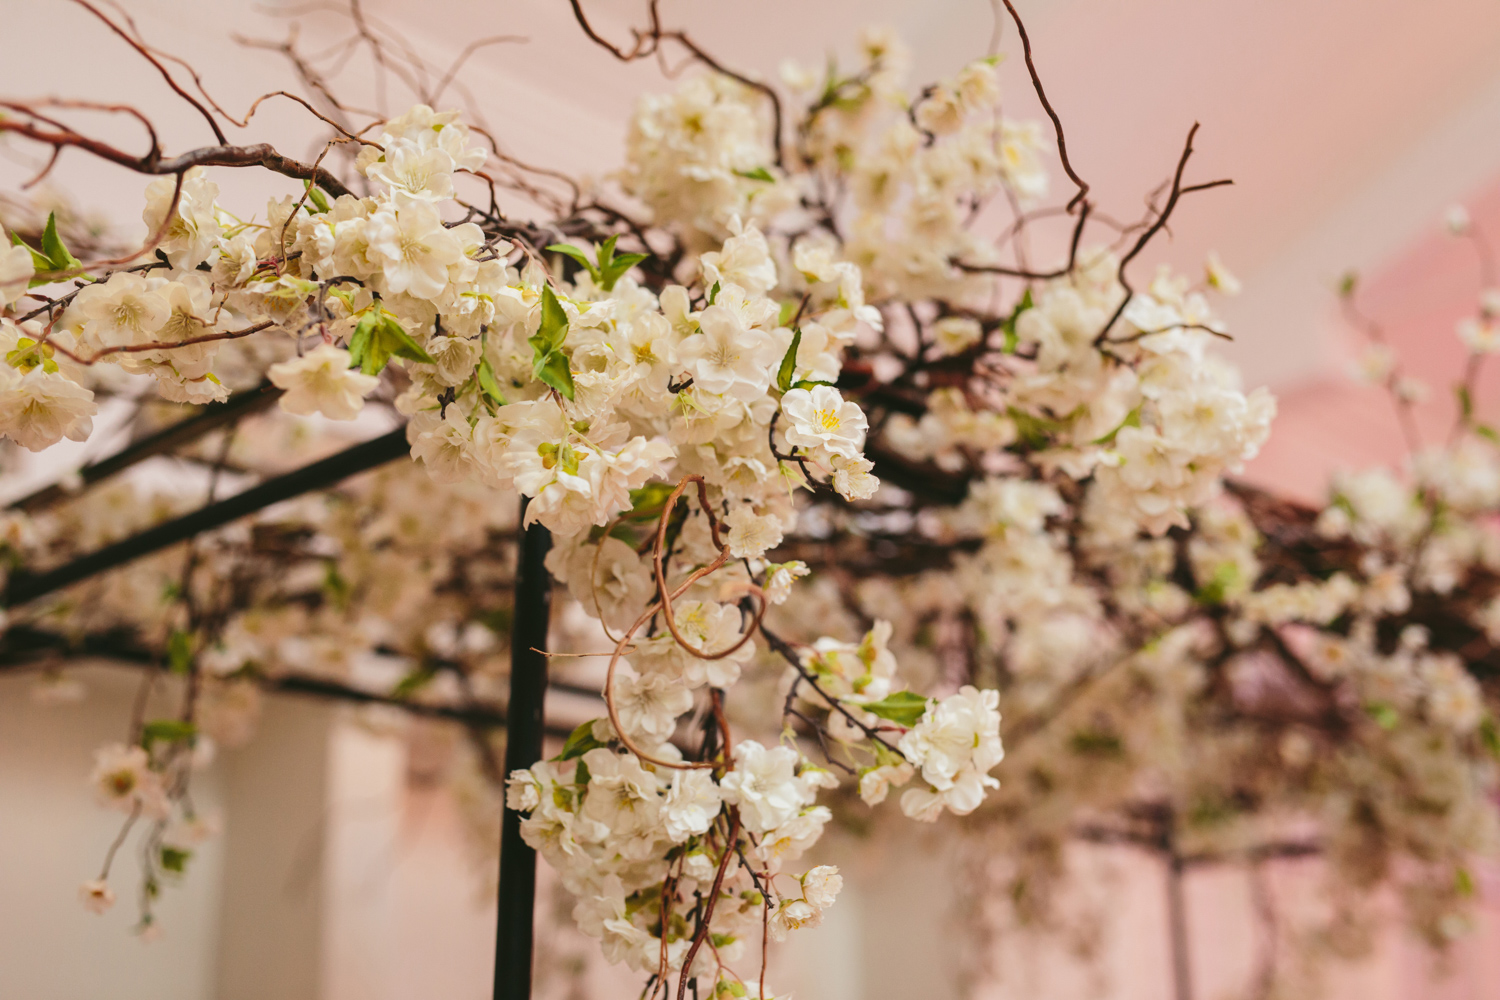 an image taken by Vividblue of a floral installation at Val de Vie.